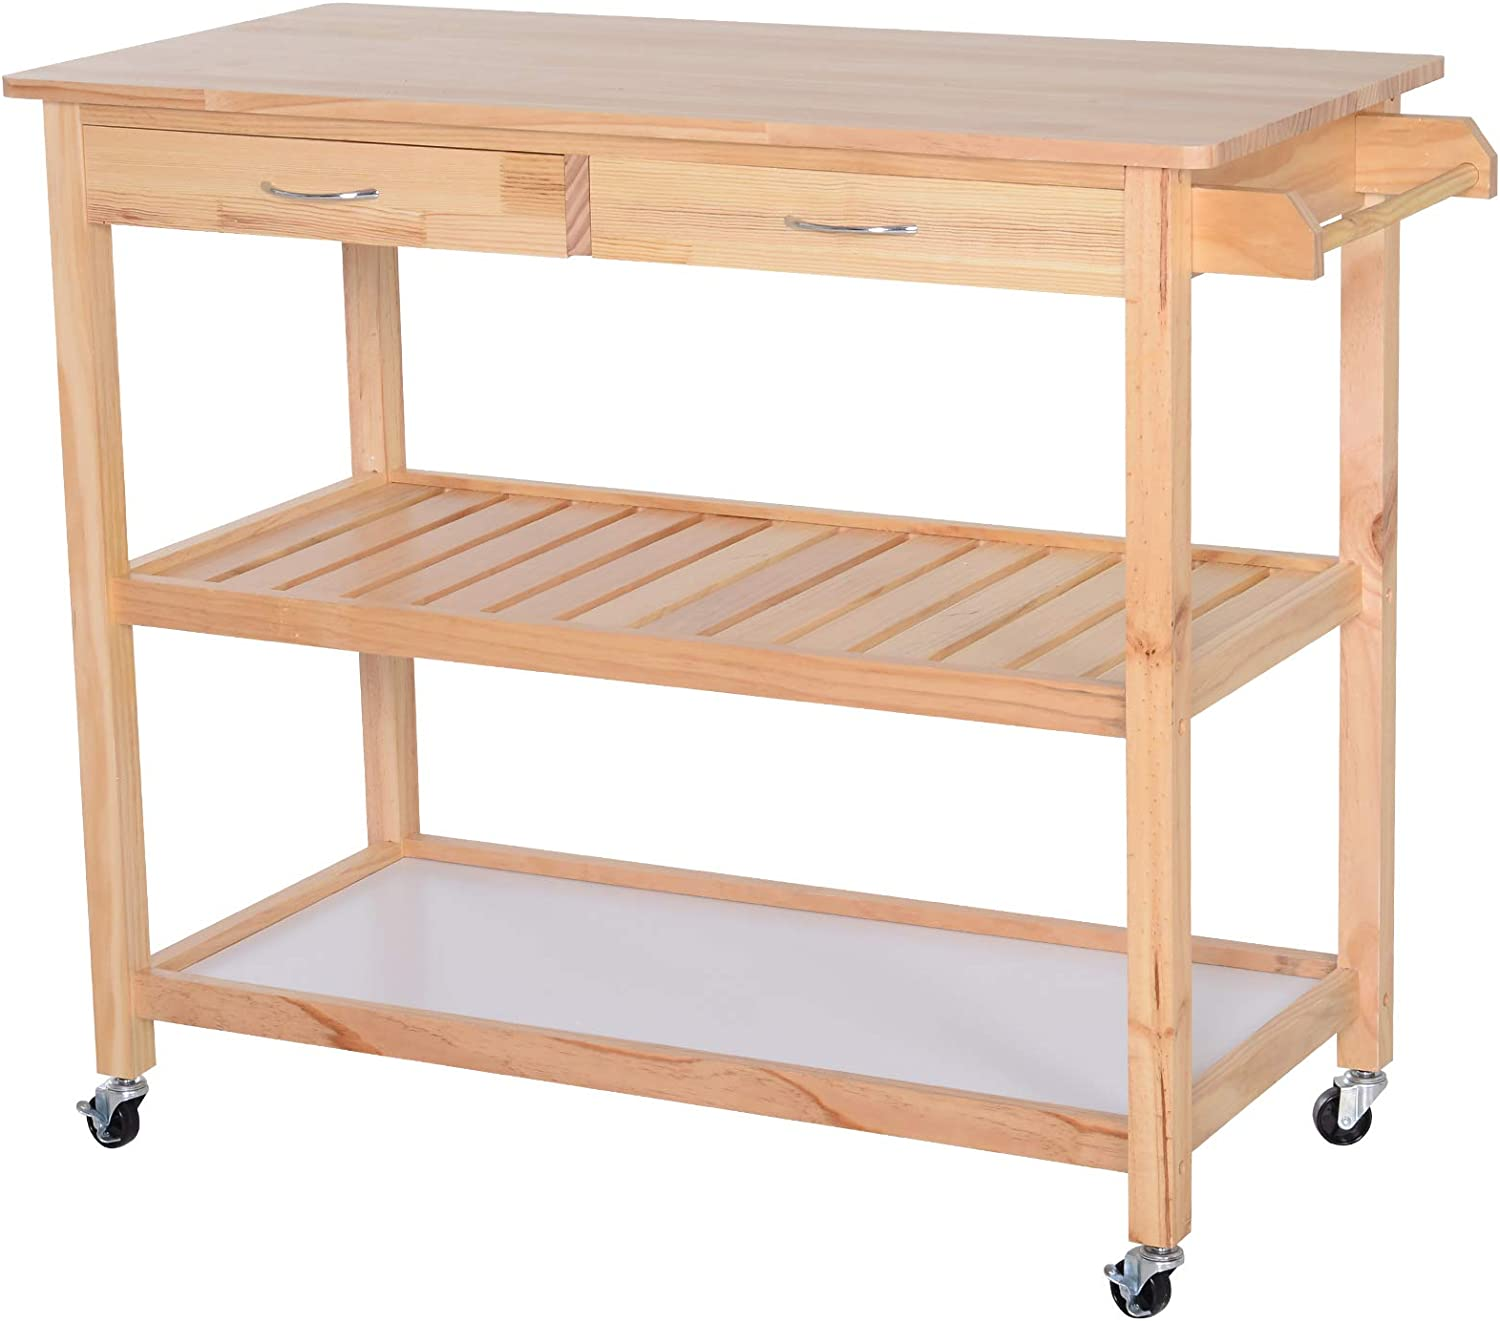 Amazon Com Homcom 42 Kitchen Trolley Cart Rolling Island Utility Serving Cart With 2 Drawers And 3 Tier Shelf Pine Wood Kitchen Islands Carts